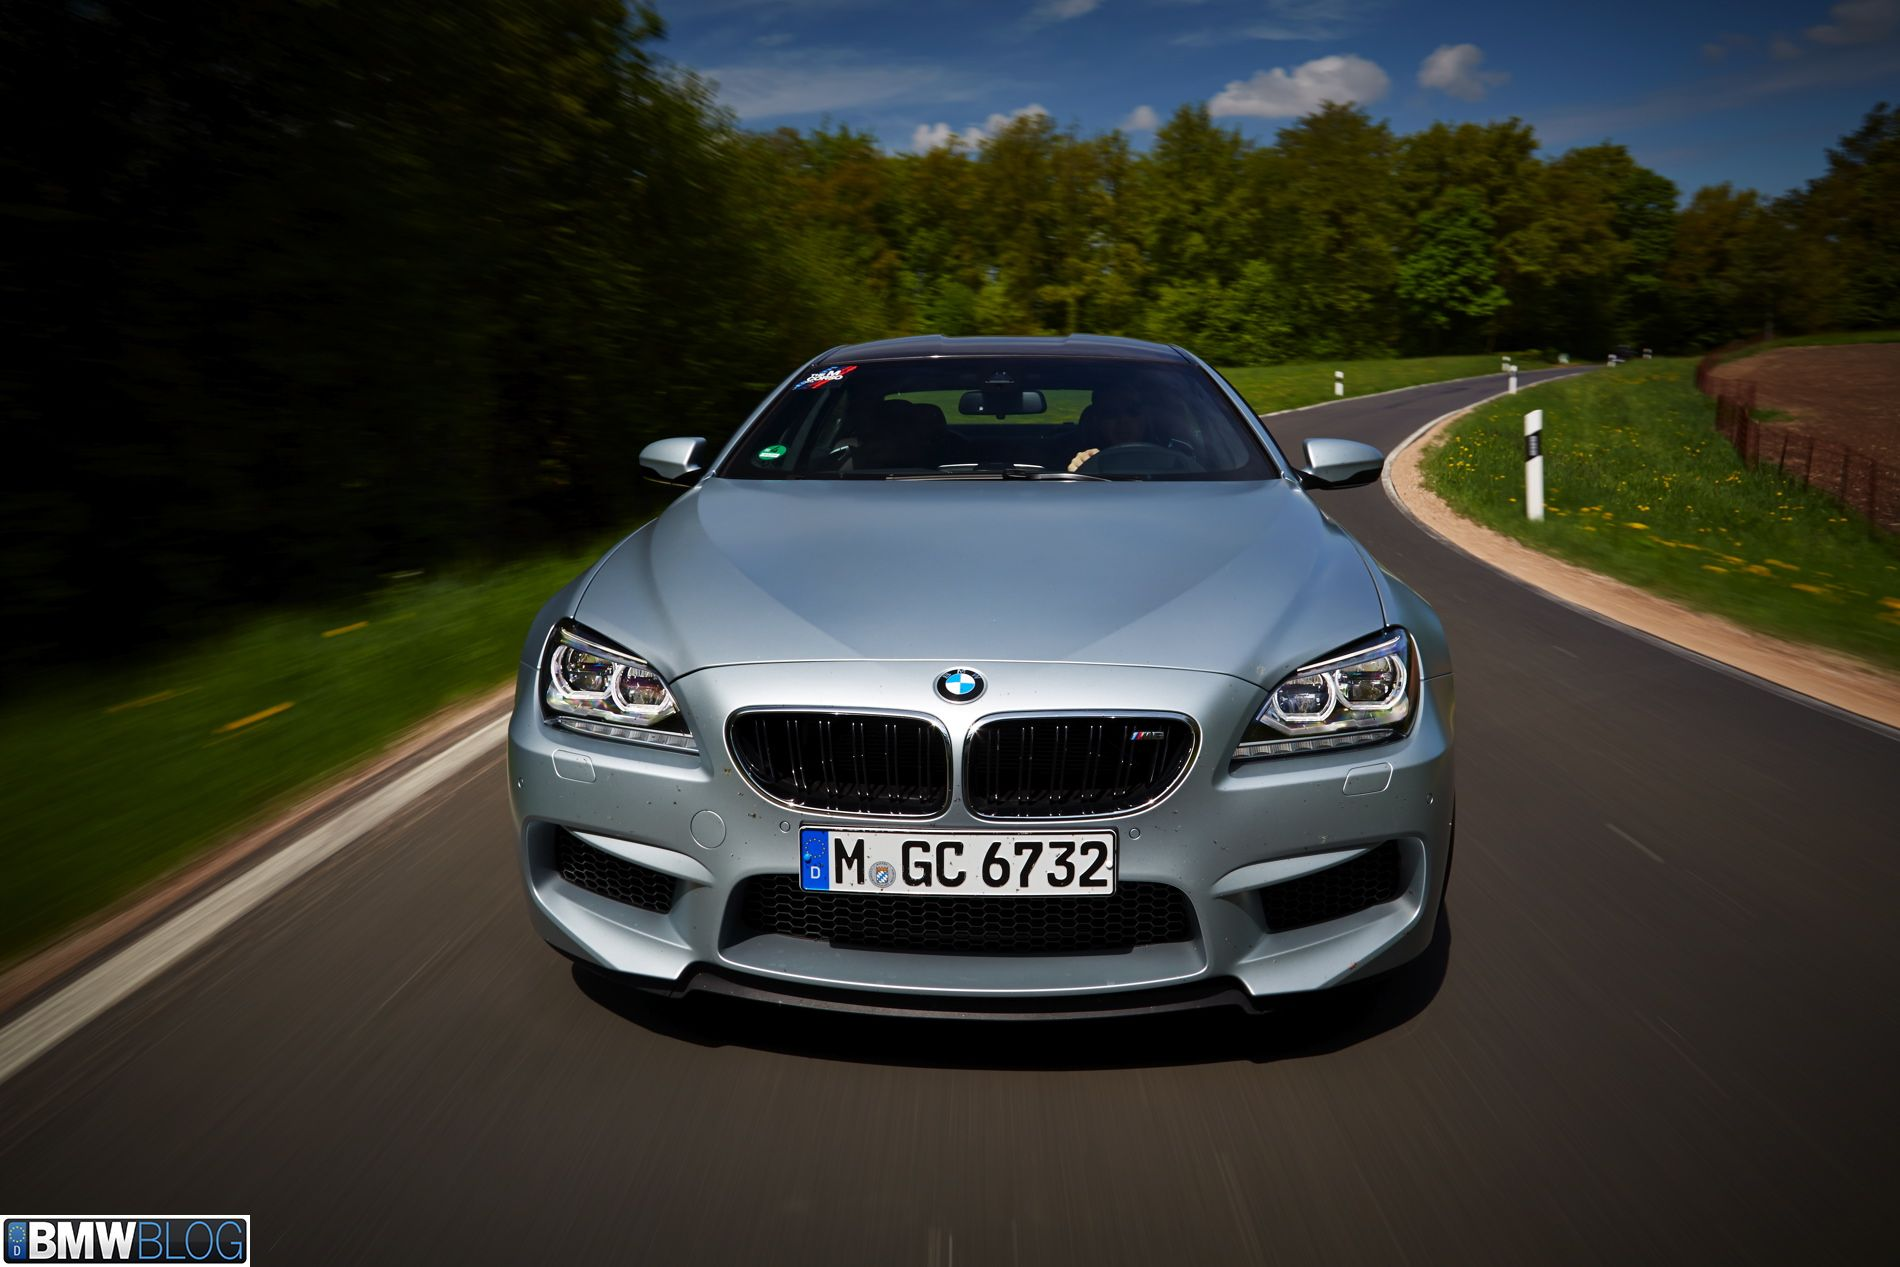 Drag Race: Tuned BMW F10 M5 vs. stock BMW M6 Gran Coupe with 305 km/h limiter - http://www.bmwblog.com/2014/12/16/drag-race-tuned-bmw-f10-m5-vs-stock-bmw-m6-gran-coupe-305-kmh-limiter/